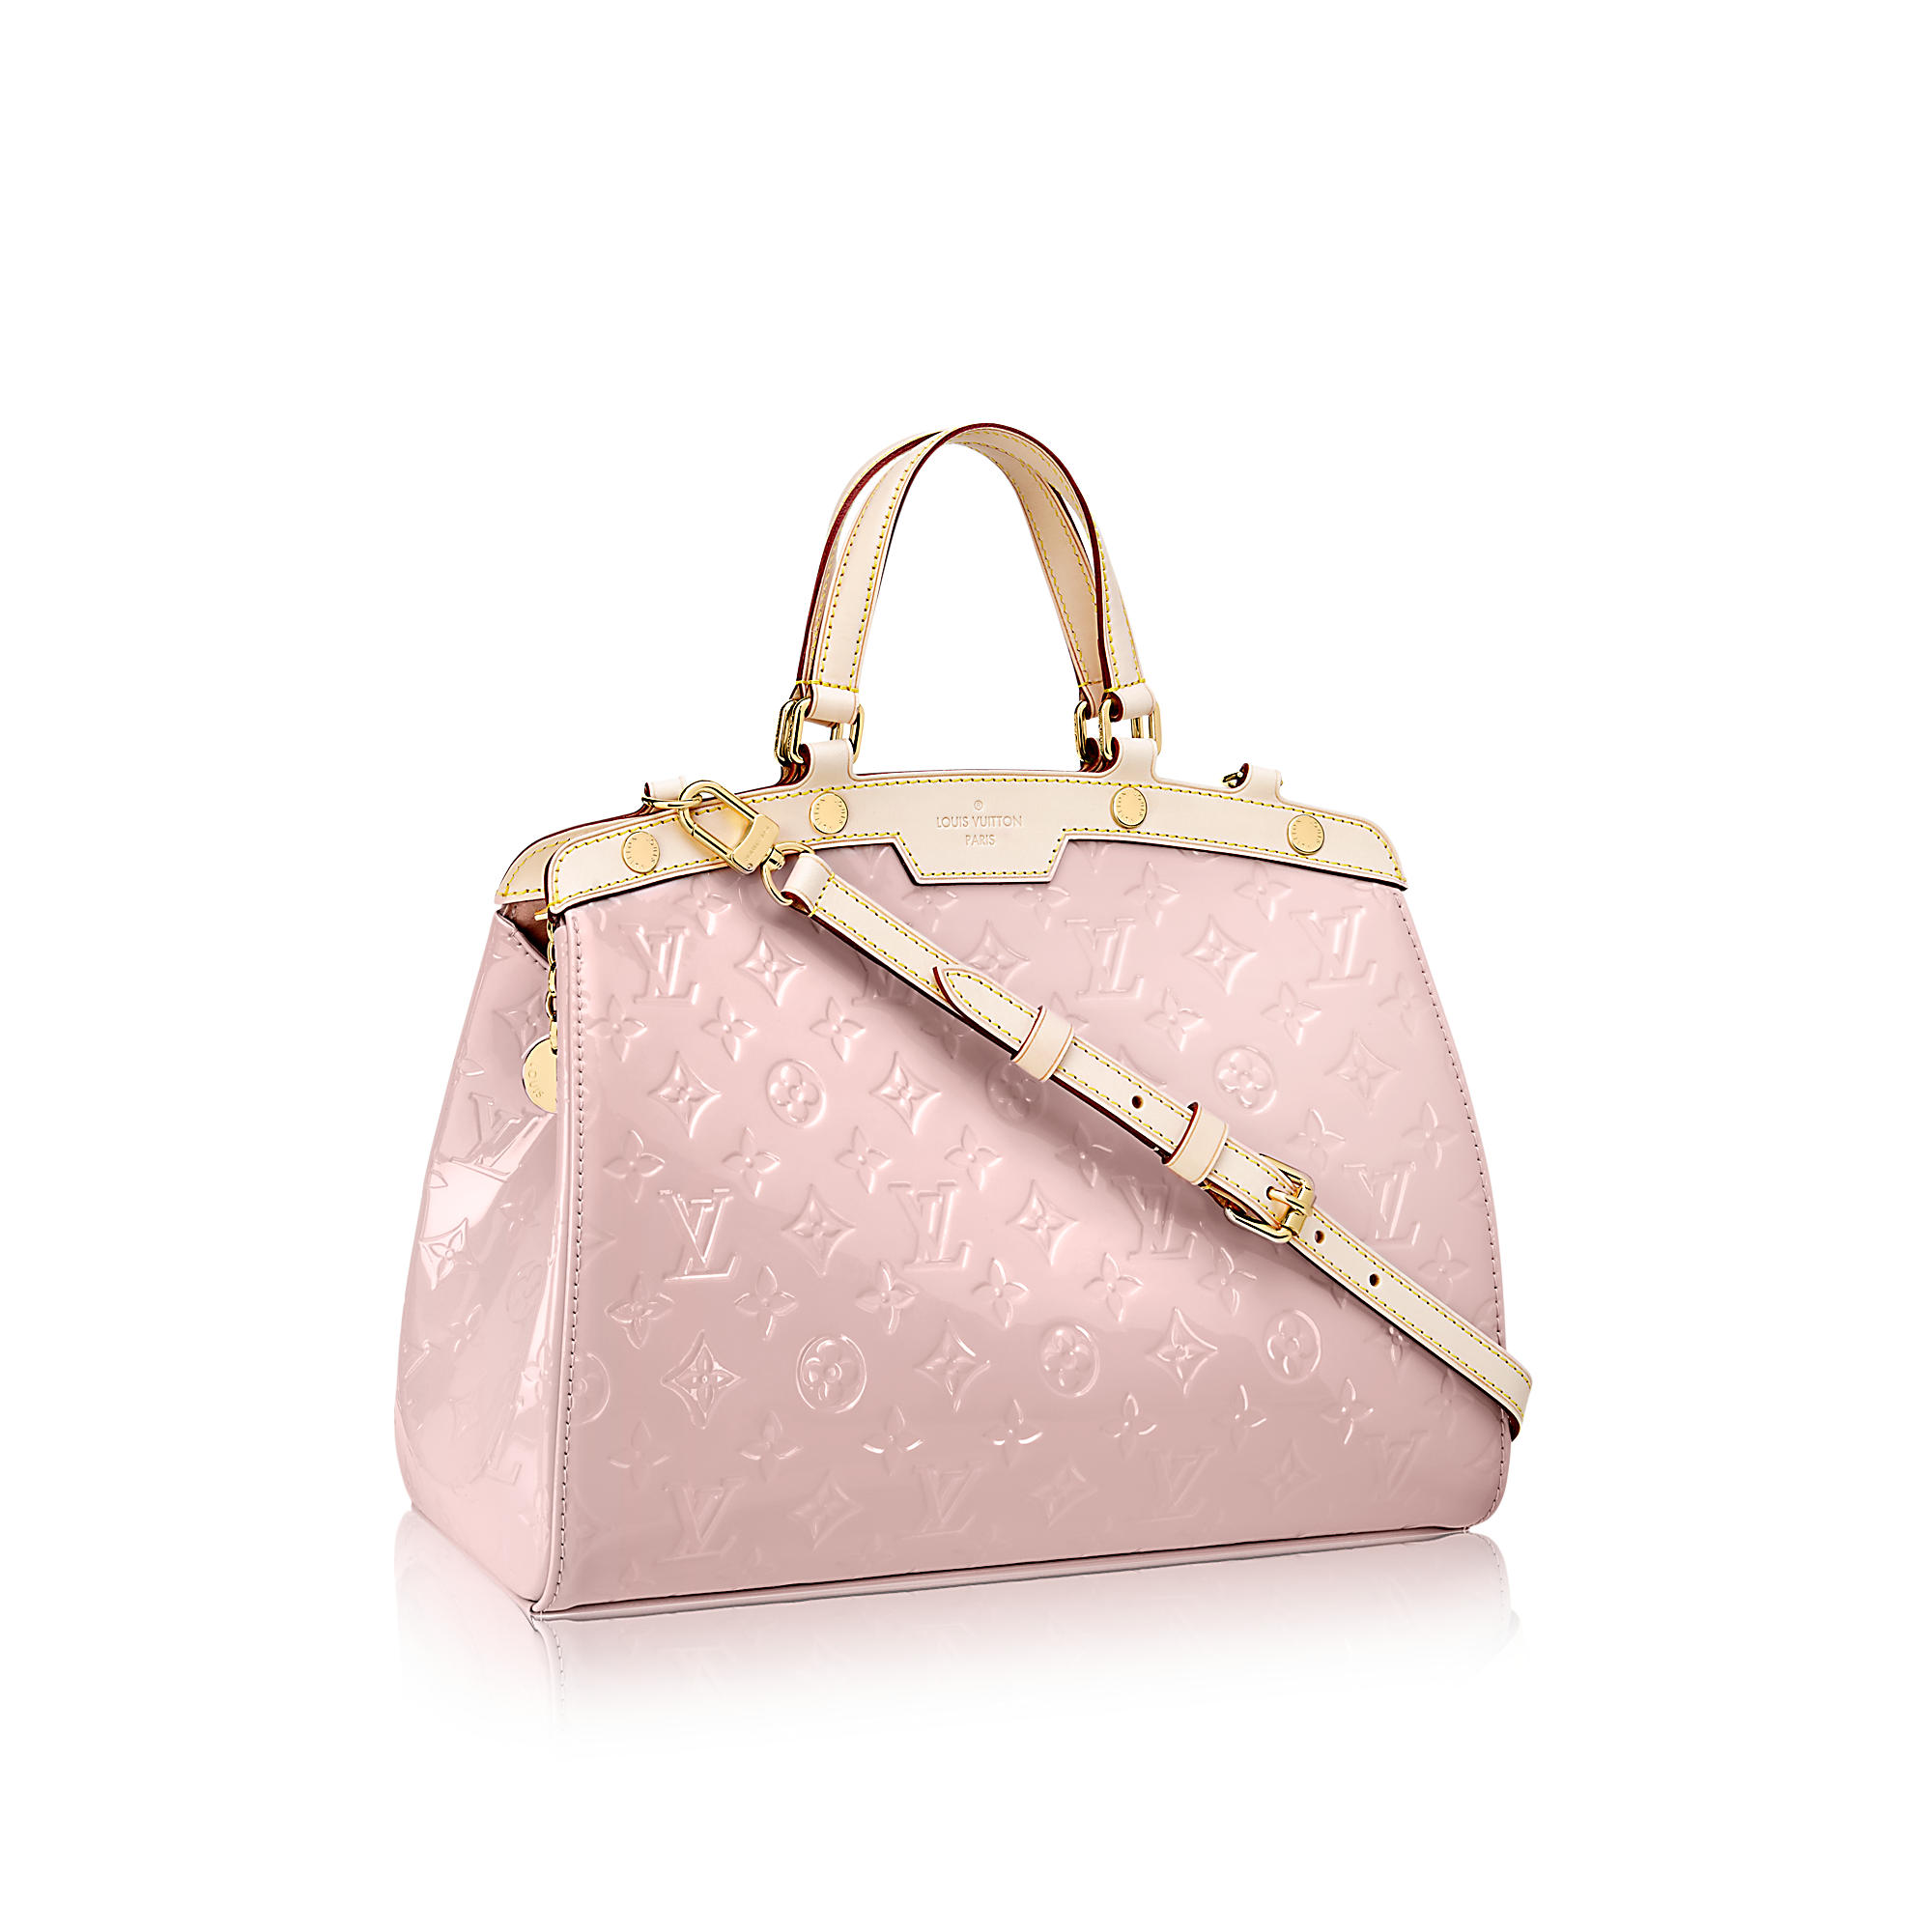 louis vuitton Monogram Vernis Replica Handbags